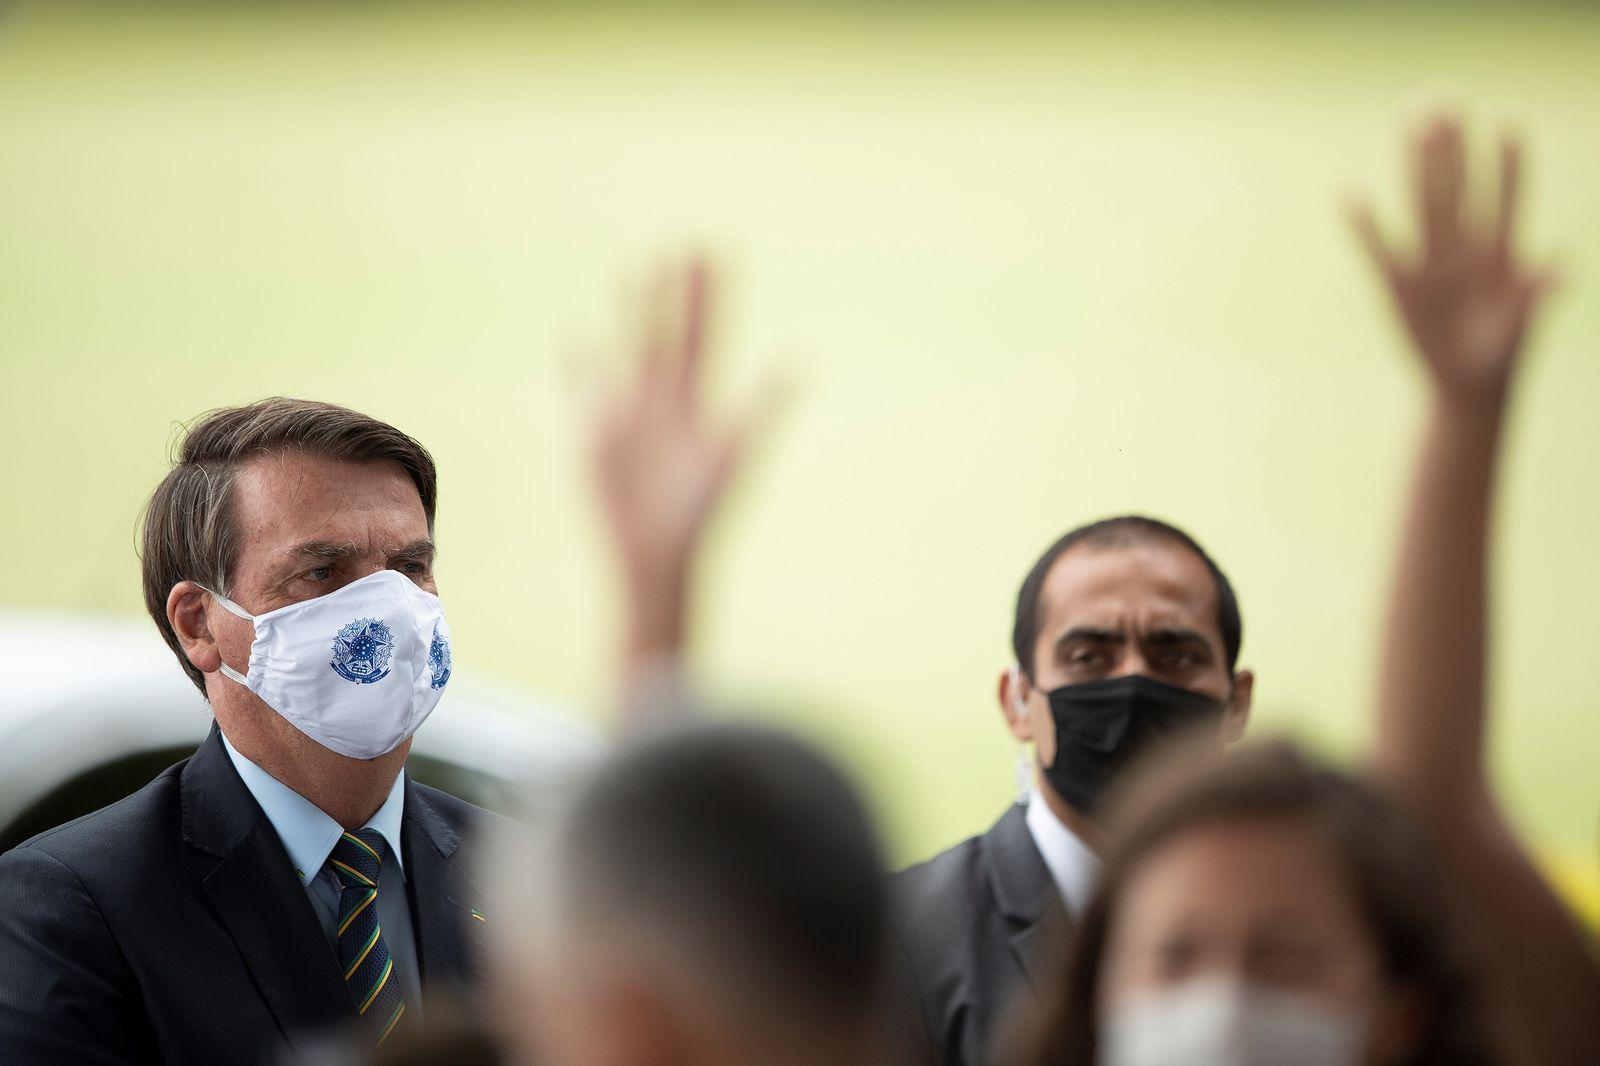 Brazil exceeds 1,000 deaths daily, Brasilia - 20 May 2020